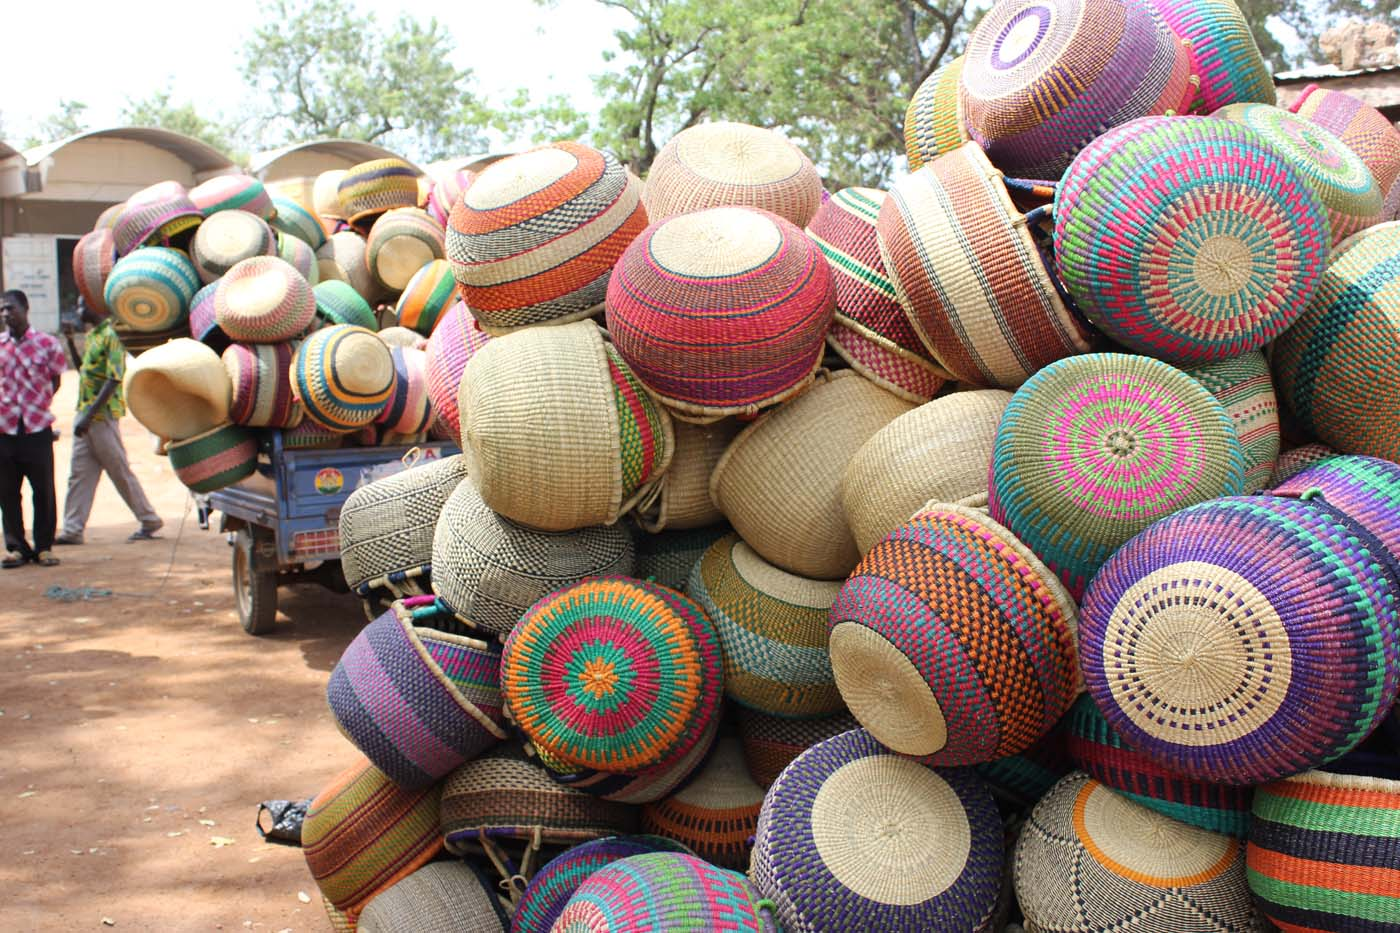 Baskets piled up high post-market